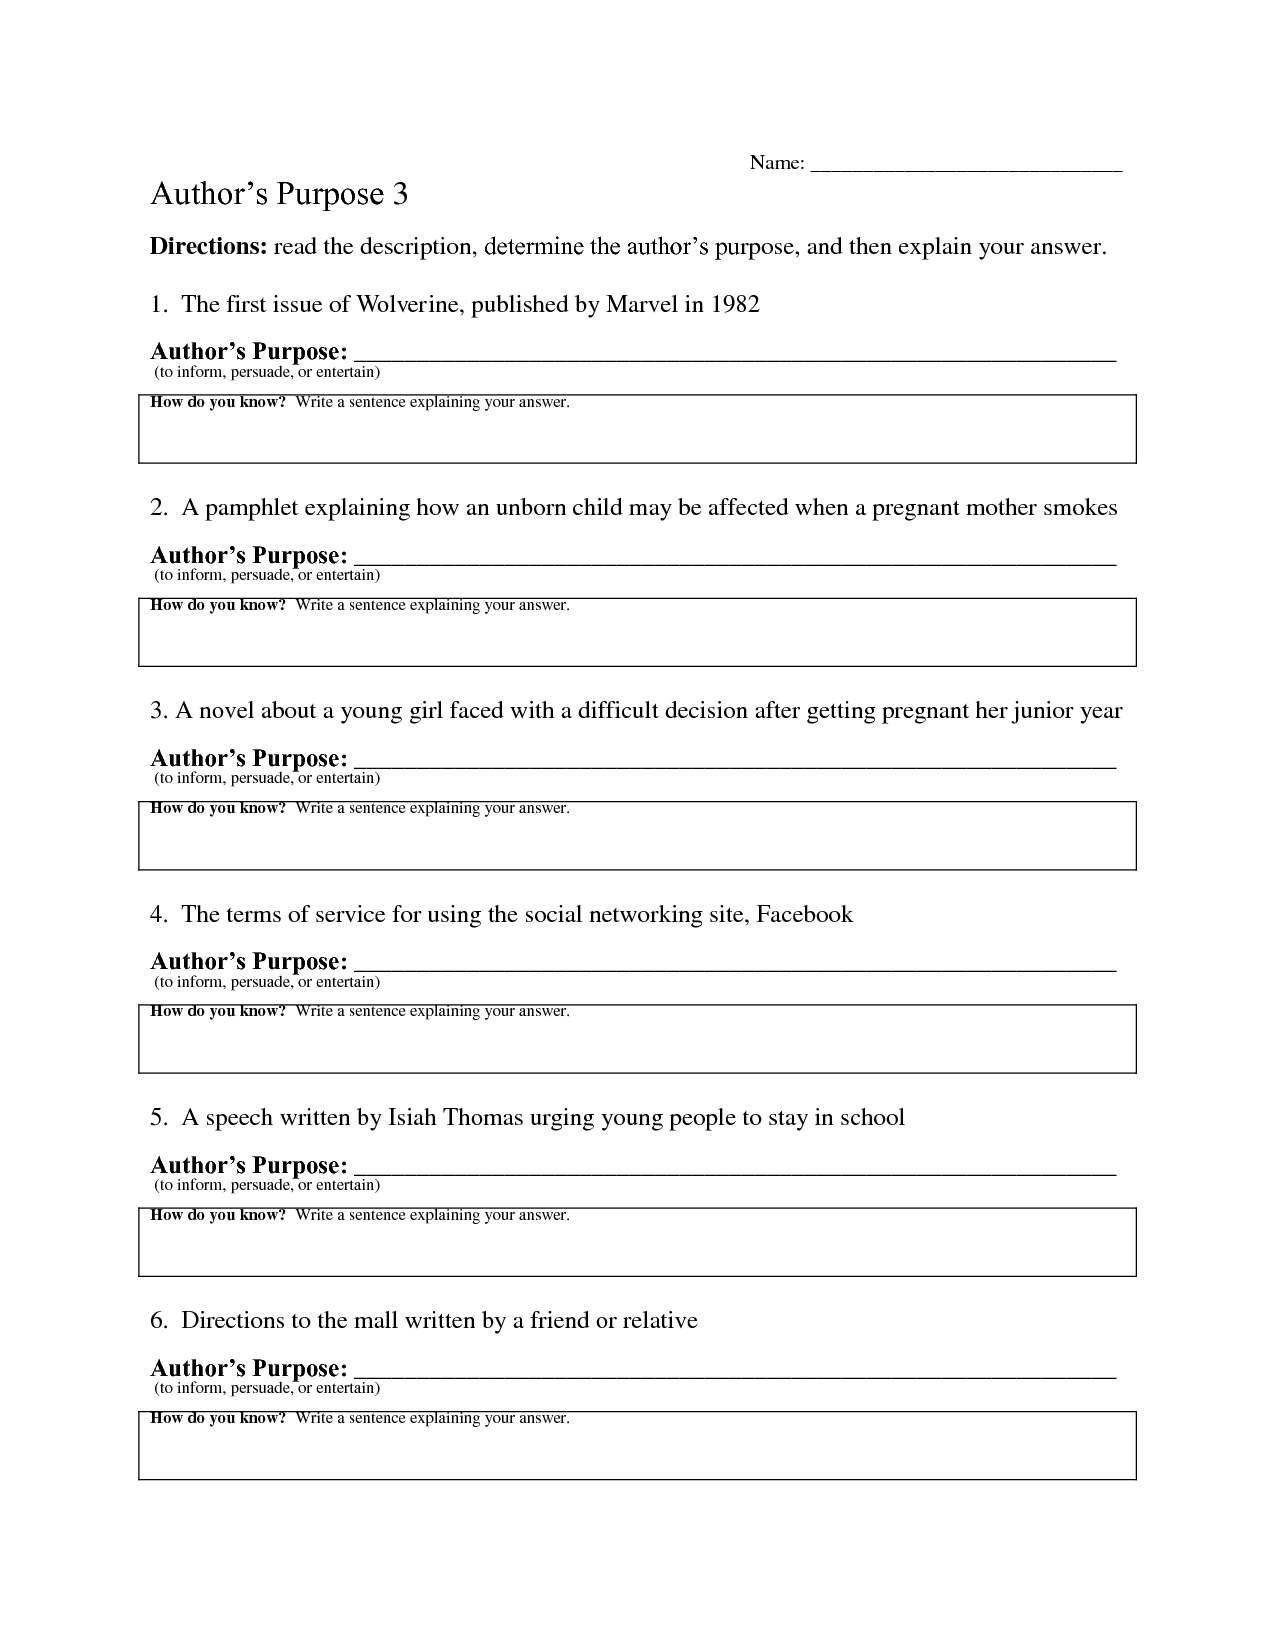 10 Best Images Of Authors Purpose Worksheets 3rd Grade